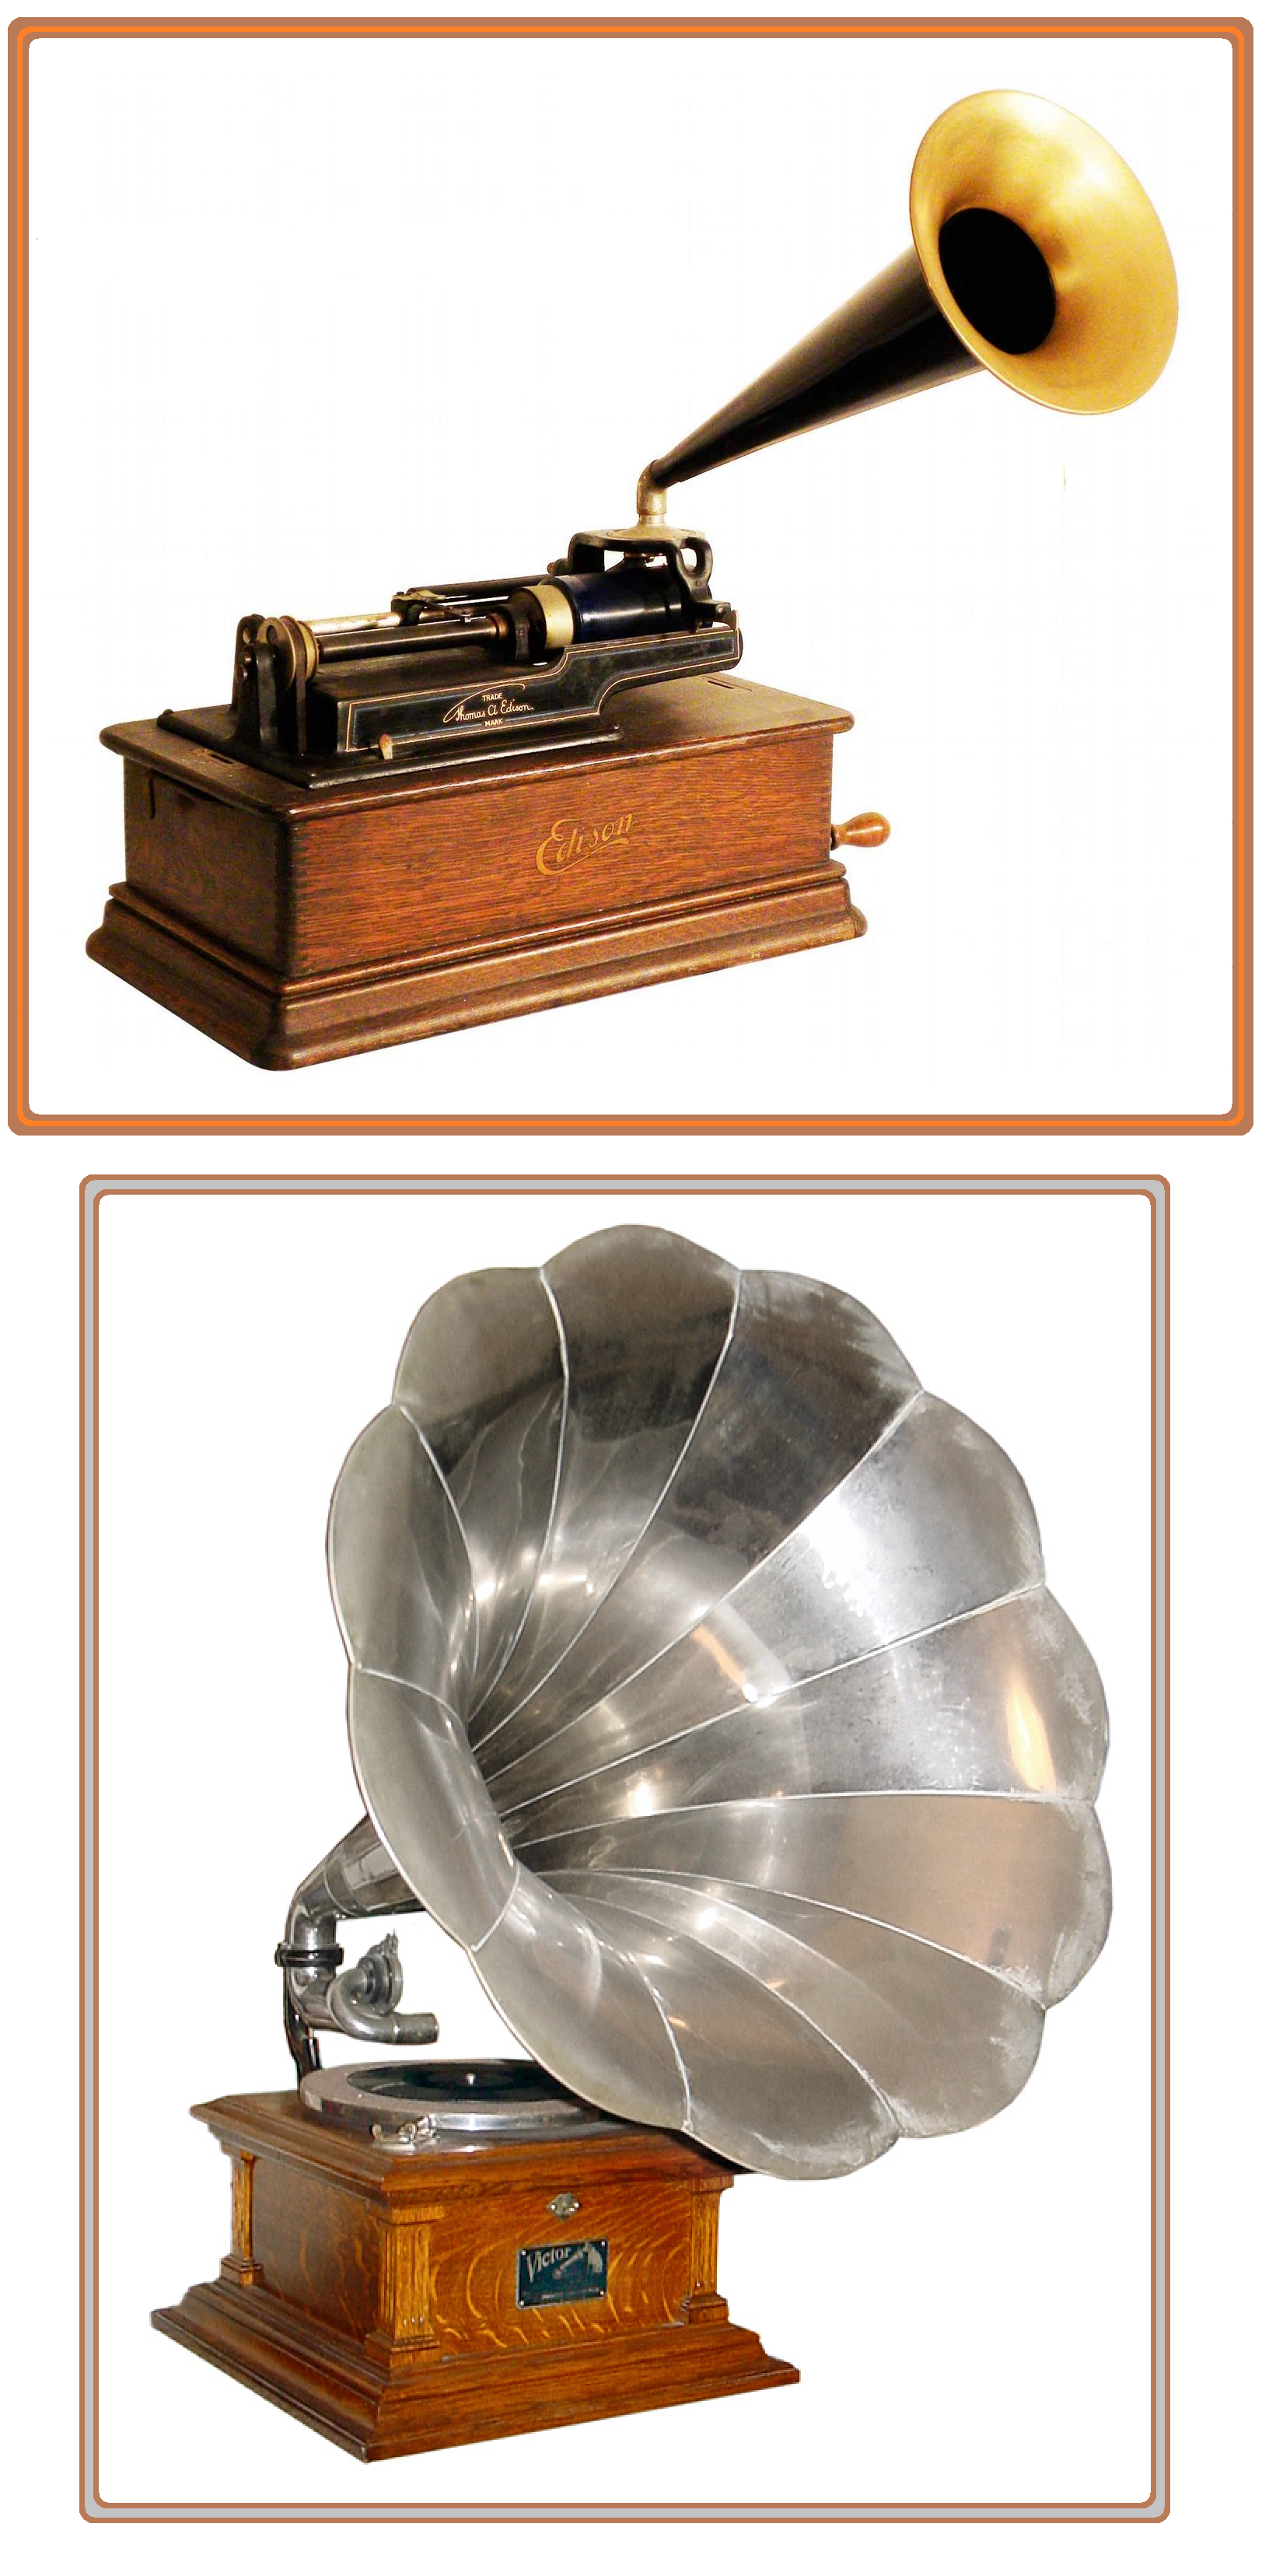 Victrola and Edison phonographs